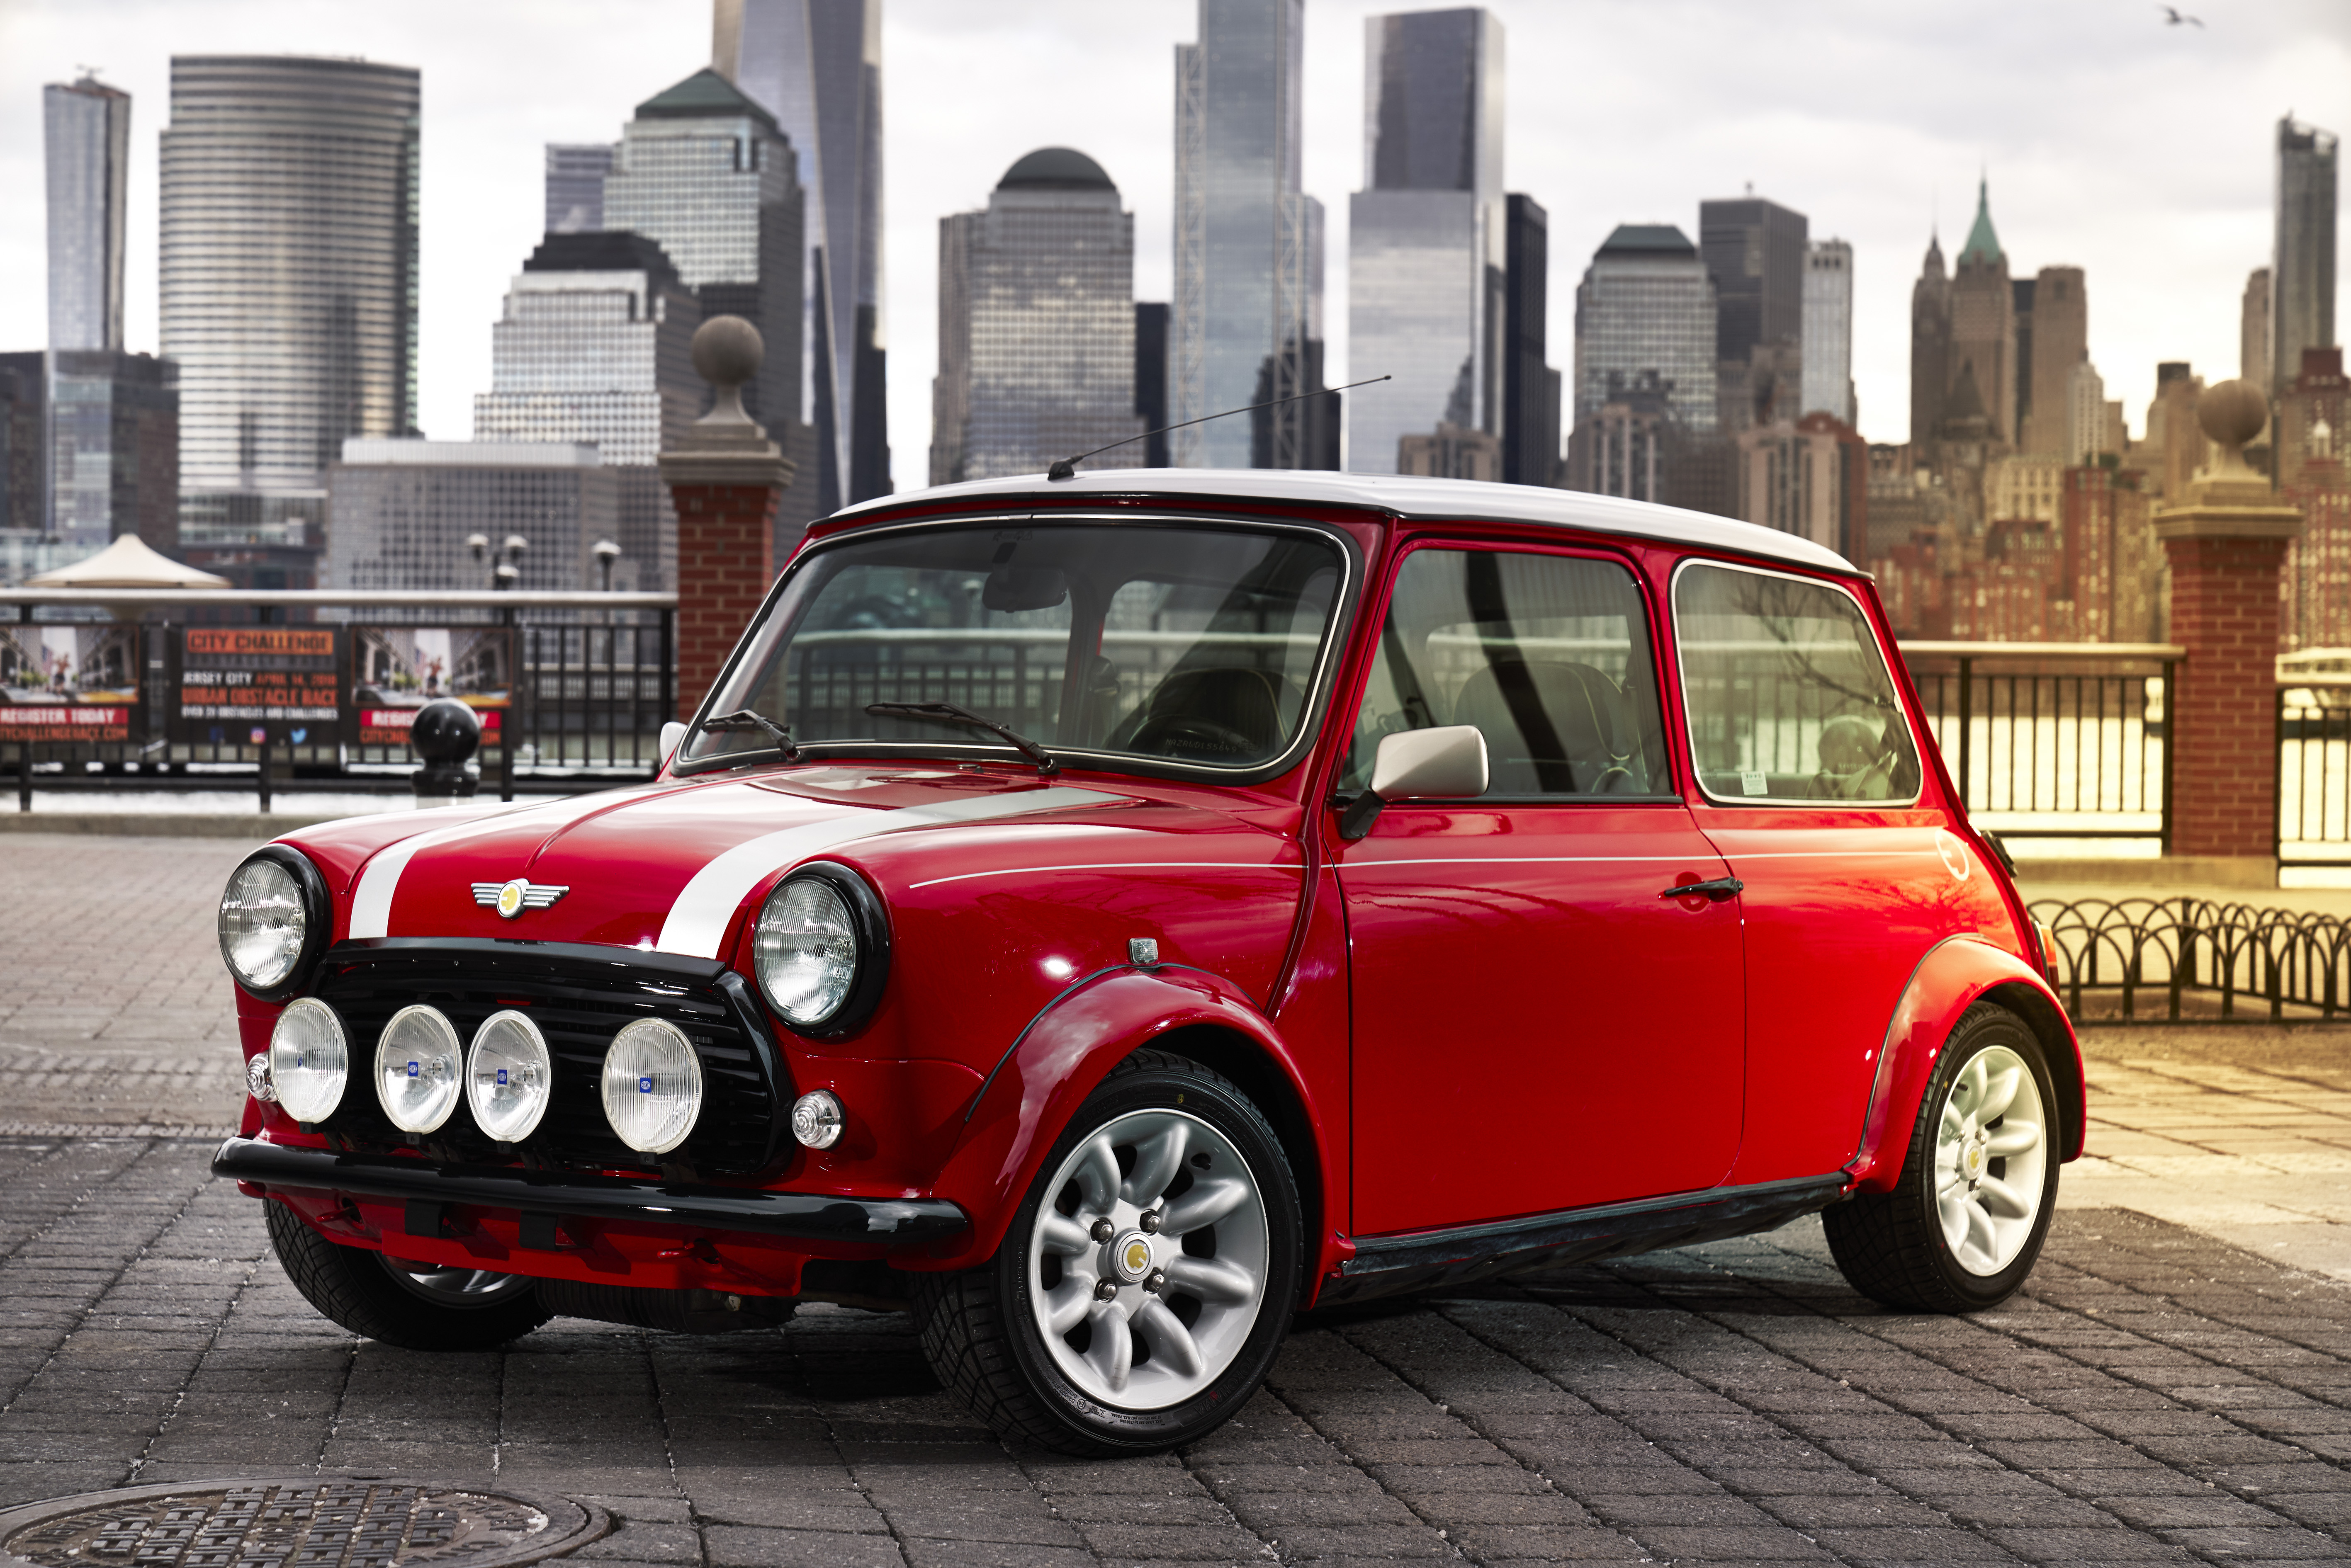 Bmw S Mini Cooper Is The Latest Clic Car To Get Electric Makeover